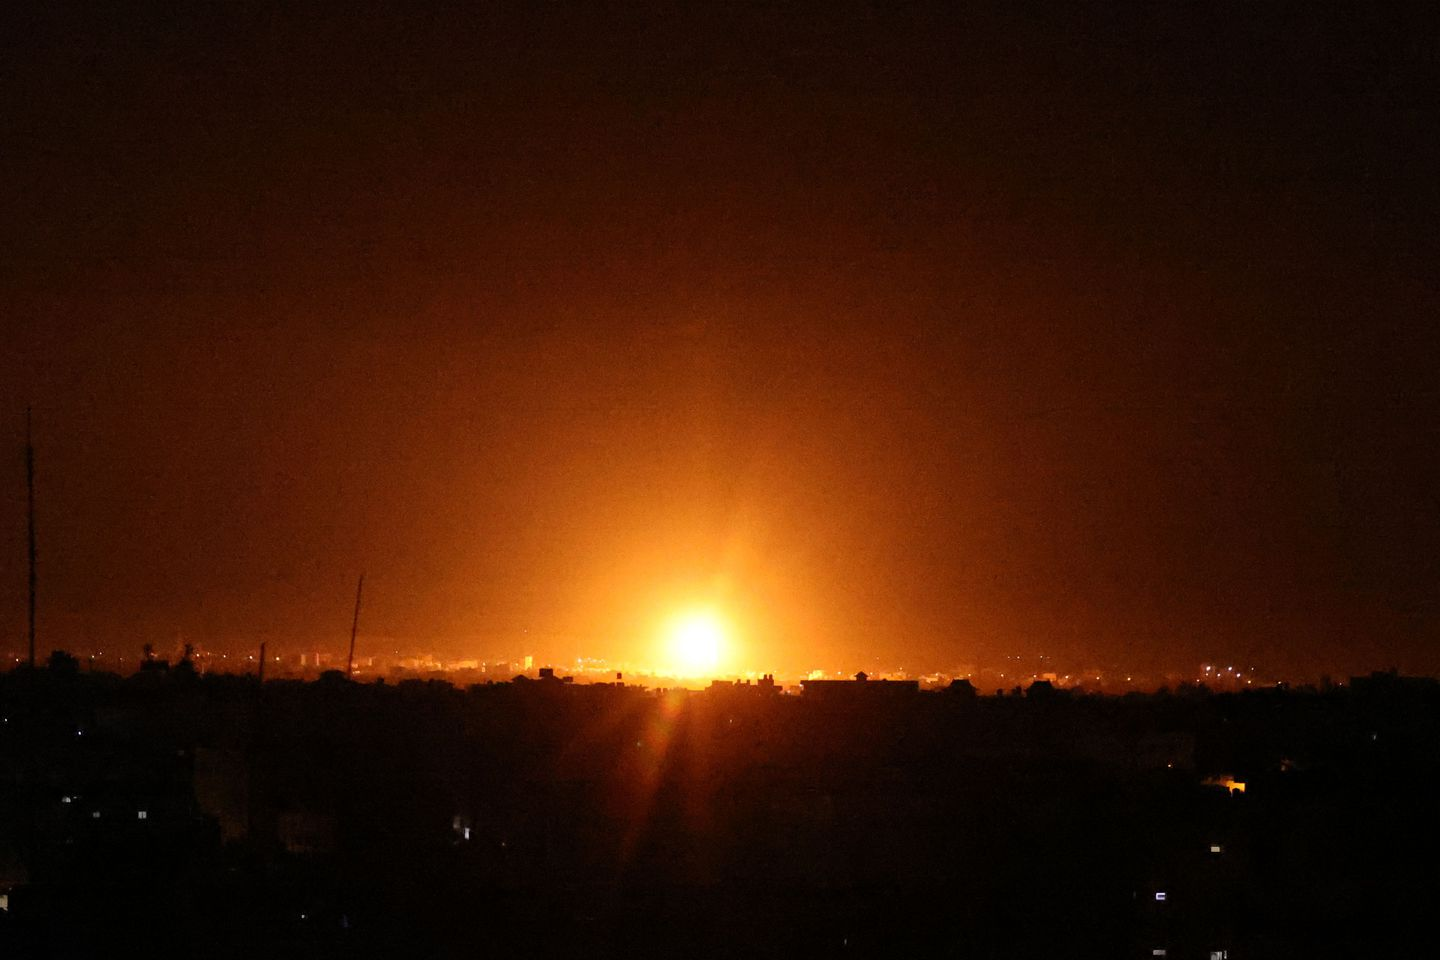 Explosions lit-up the night sky at Khan Yunis in the southern Gaza Strip, as Israeli forces shell the Palestinian enclave, early on June 16, 2021.